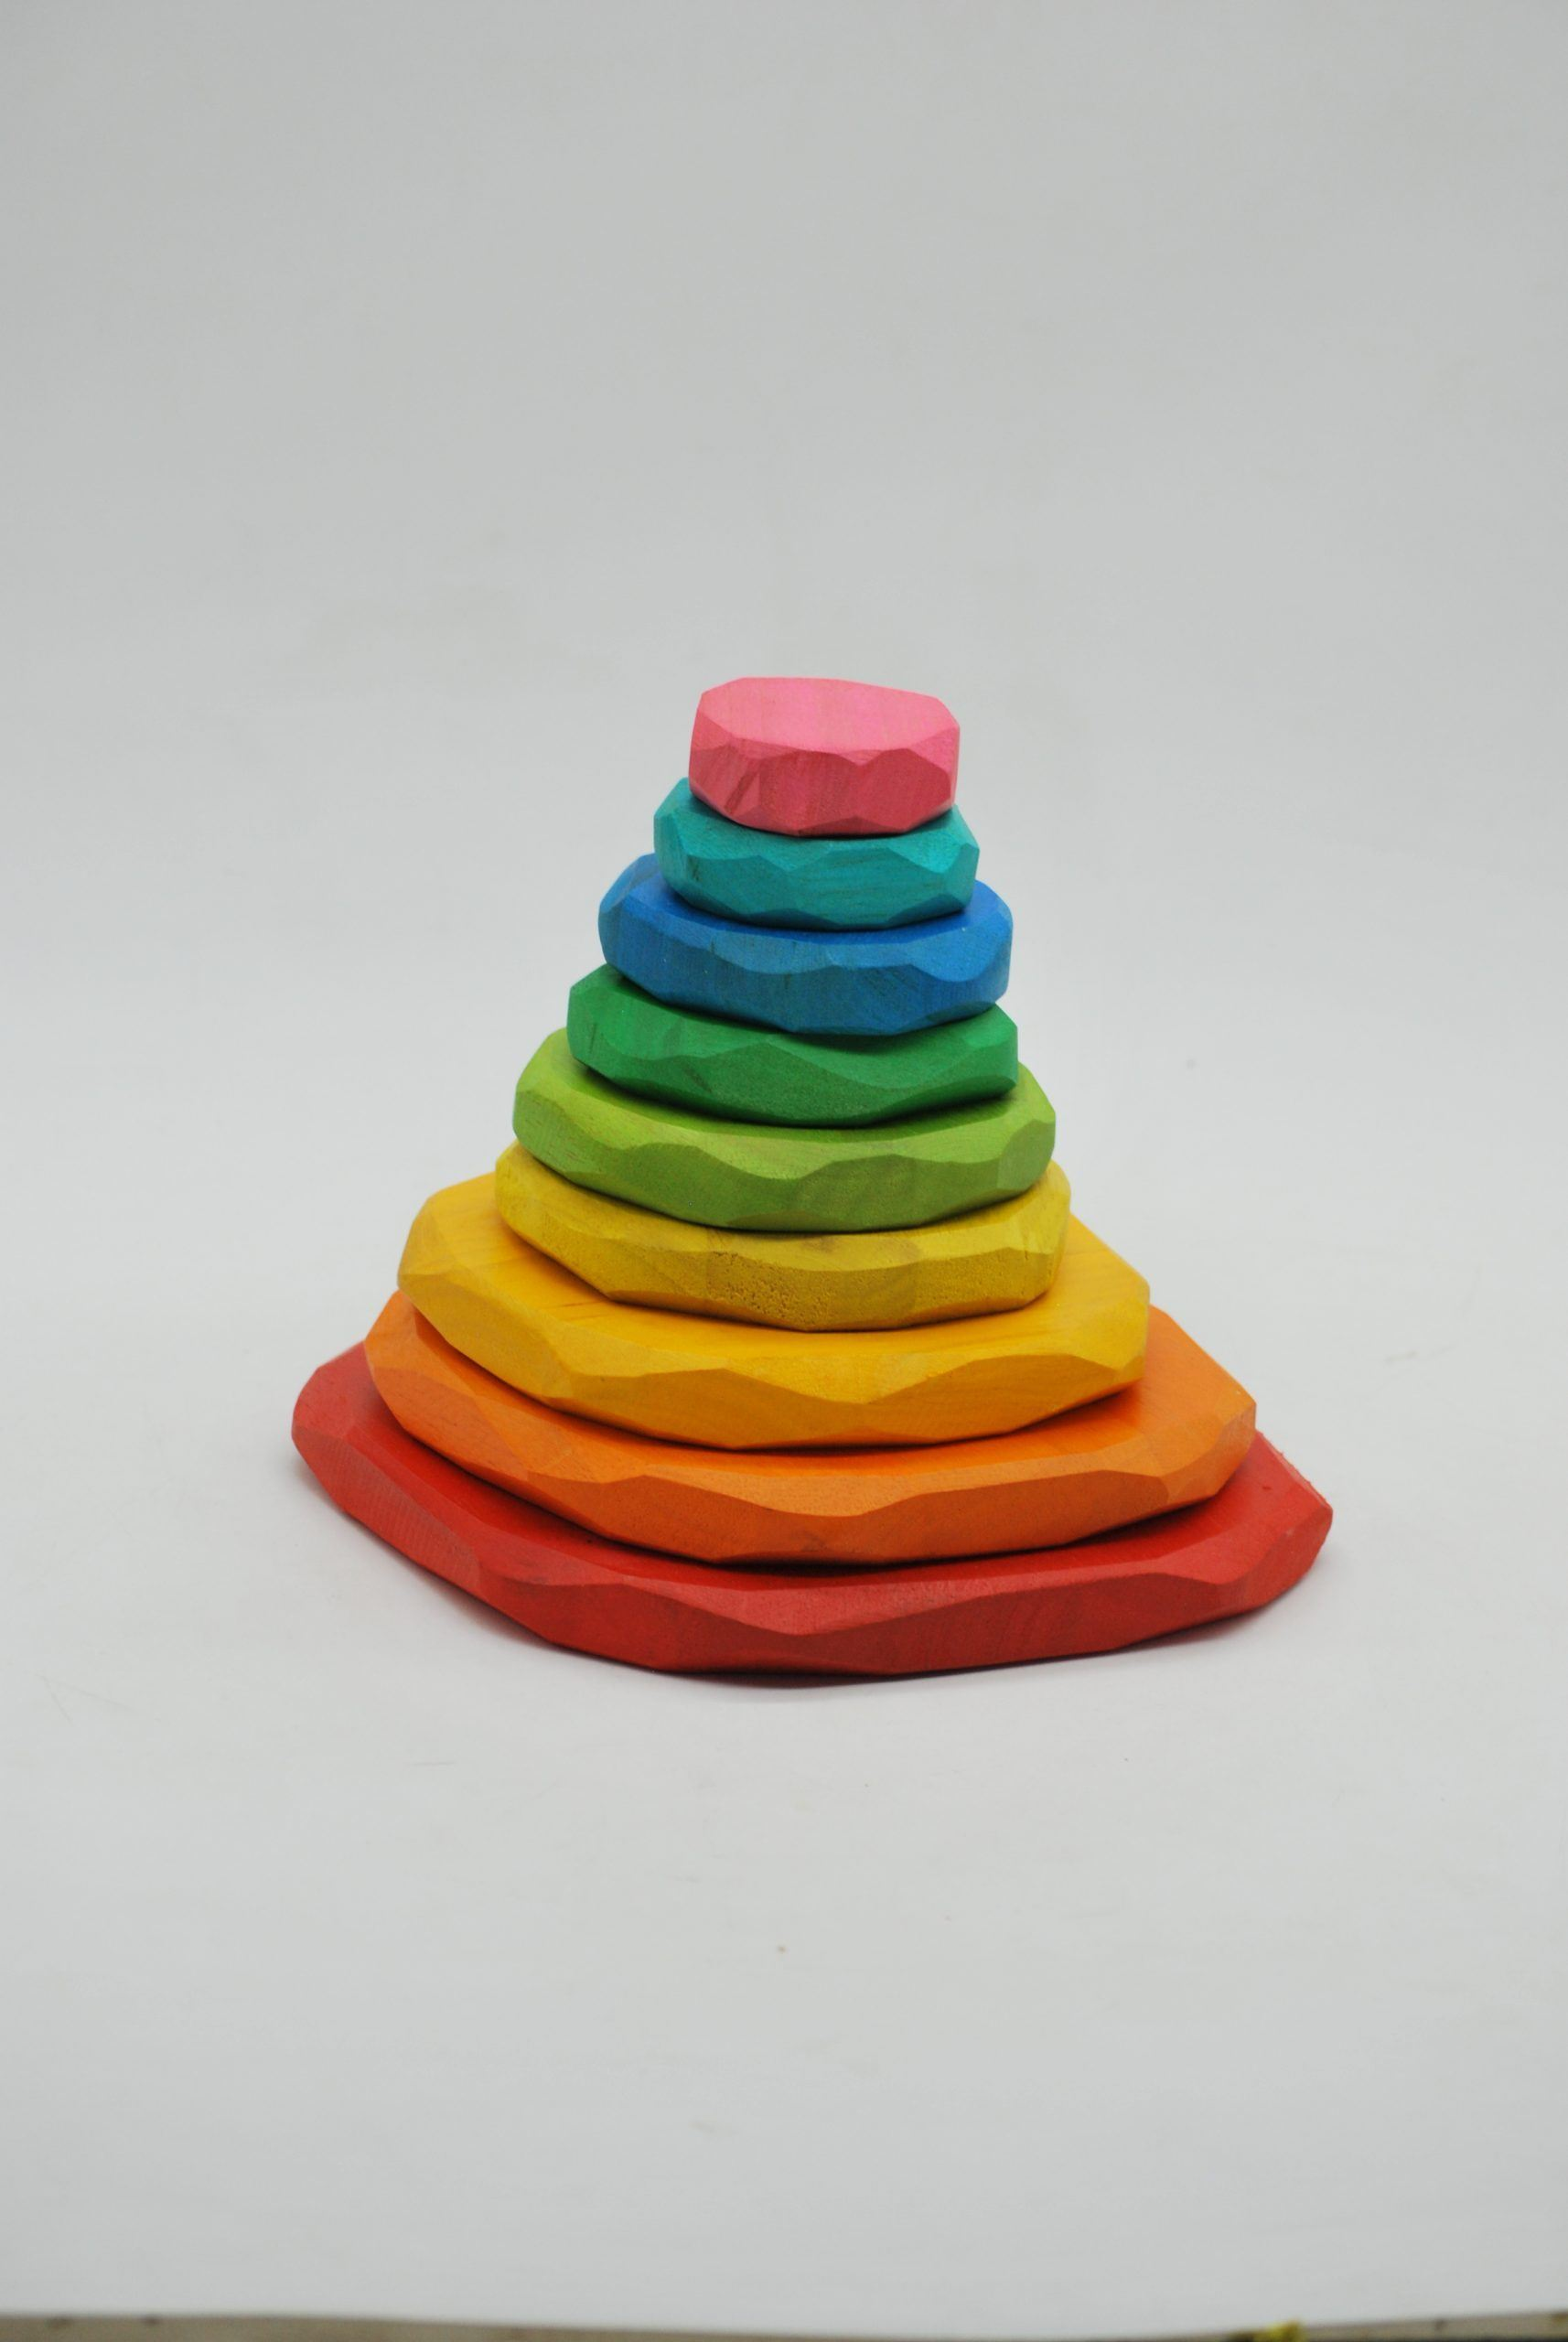 Coloured Stacking Stones (Arriving Early Feb) QToys